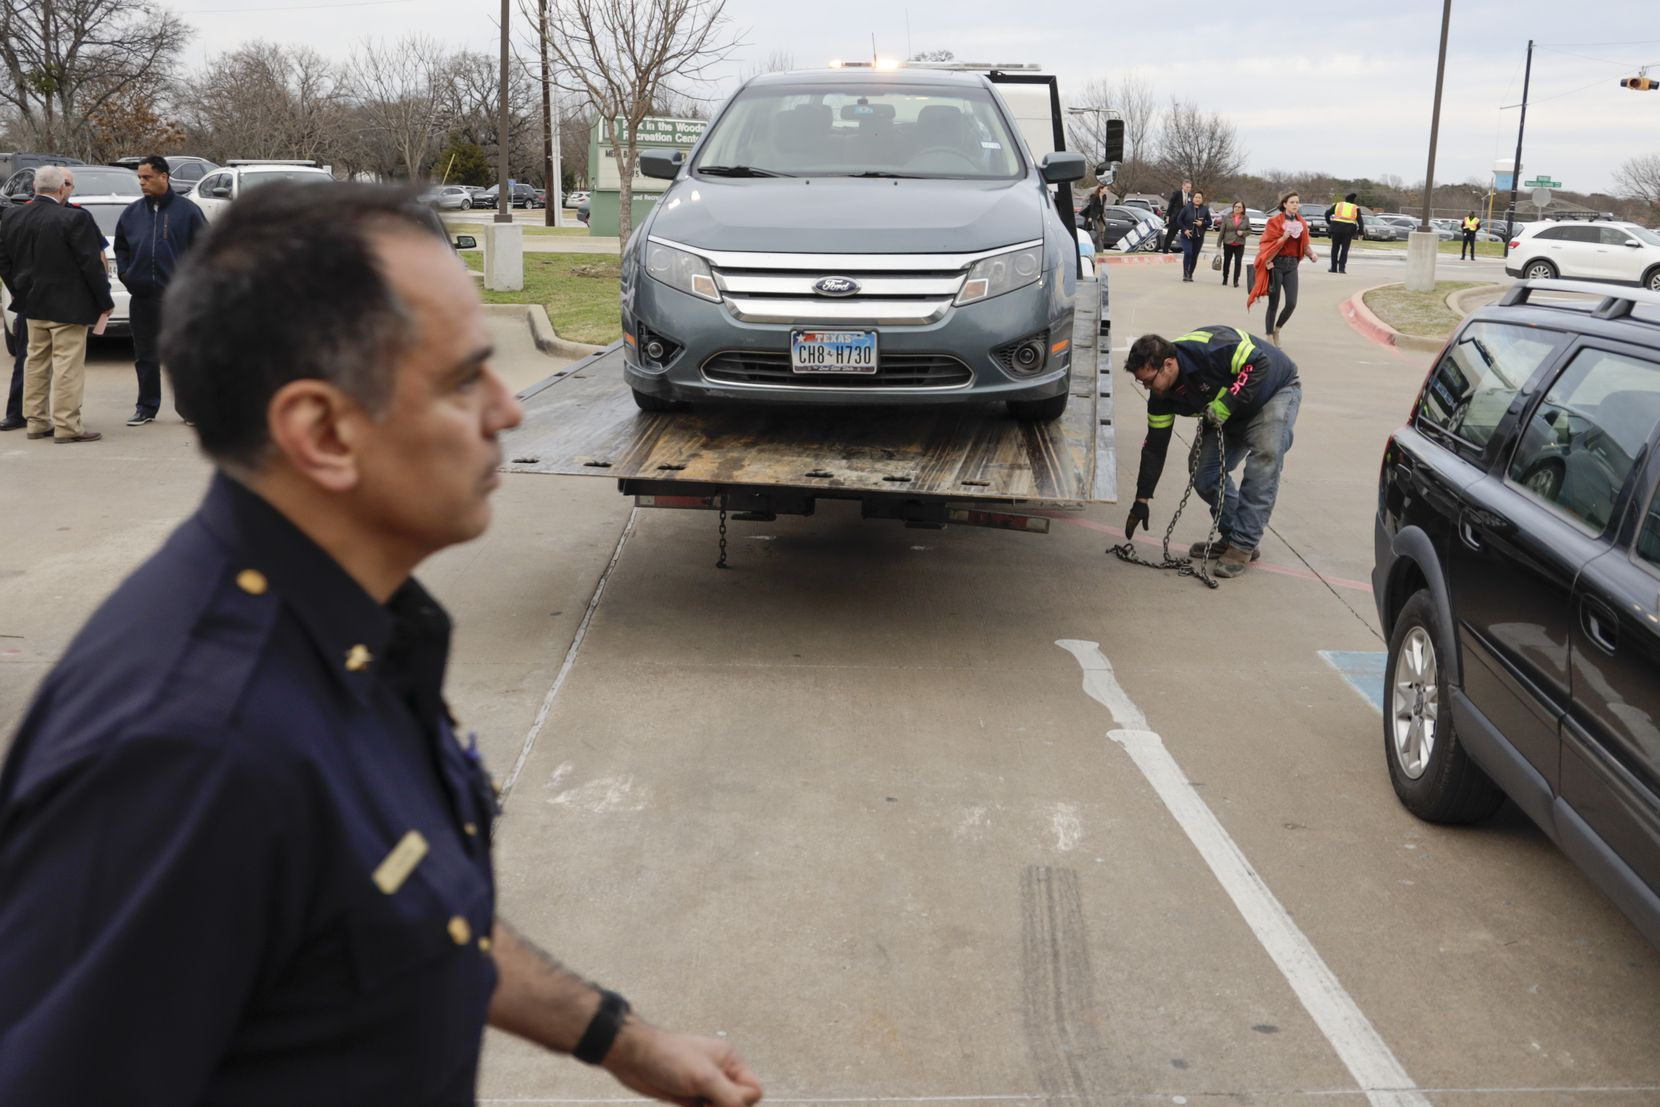 A blue Ford Fusion registered to Dallas City Council member Kevin Felder's address is towed away from the Park In the Woods Recreation Center in Dallas, where Felder was taking part in a Dallas City Council meeting on Wednesday, Feb. 13, 2019.